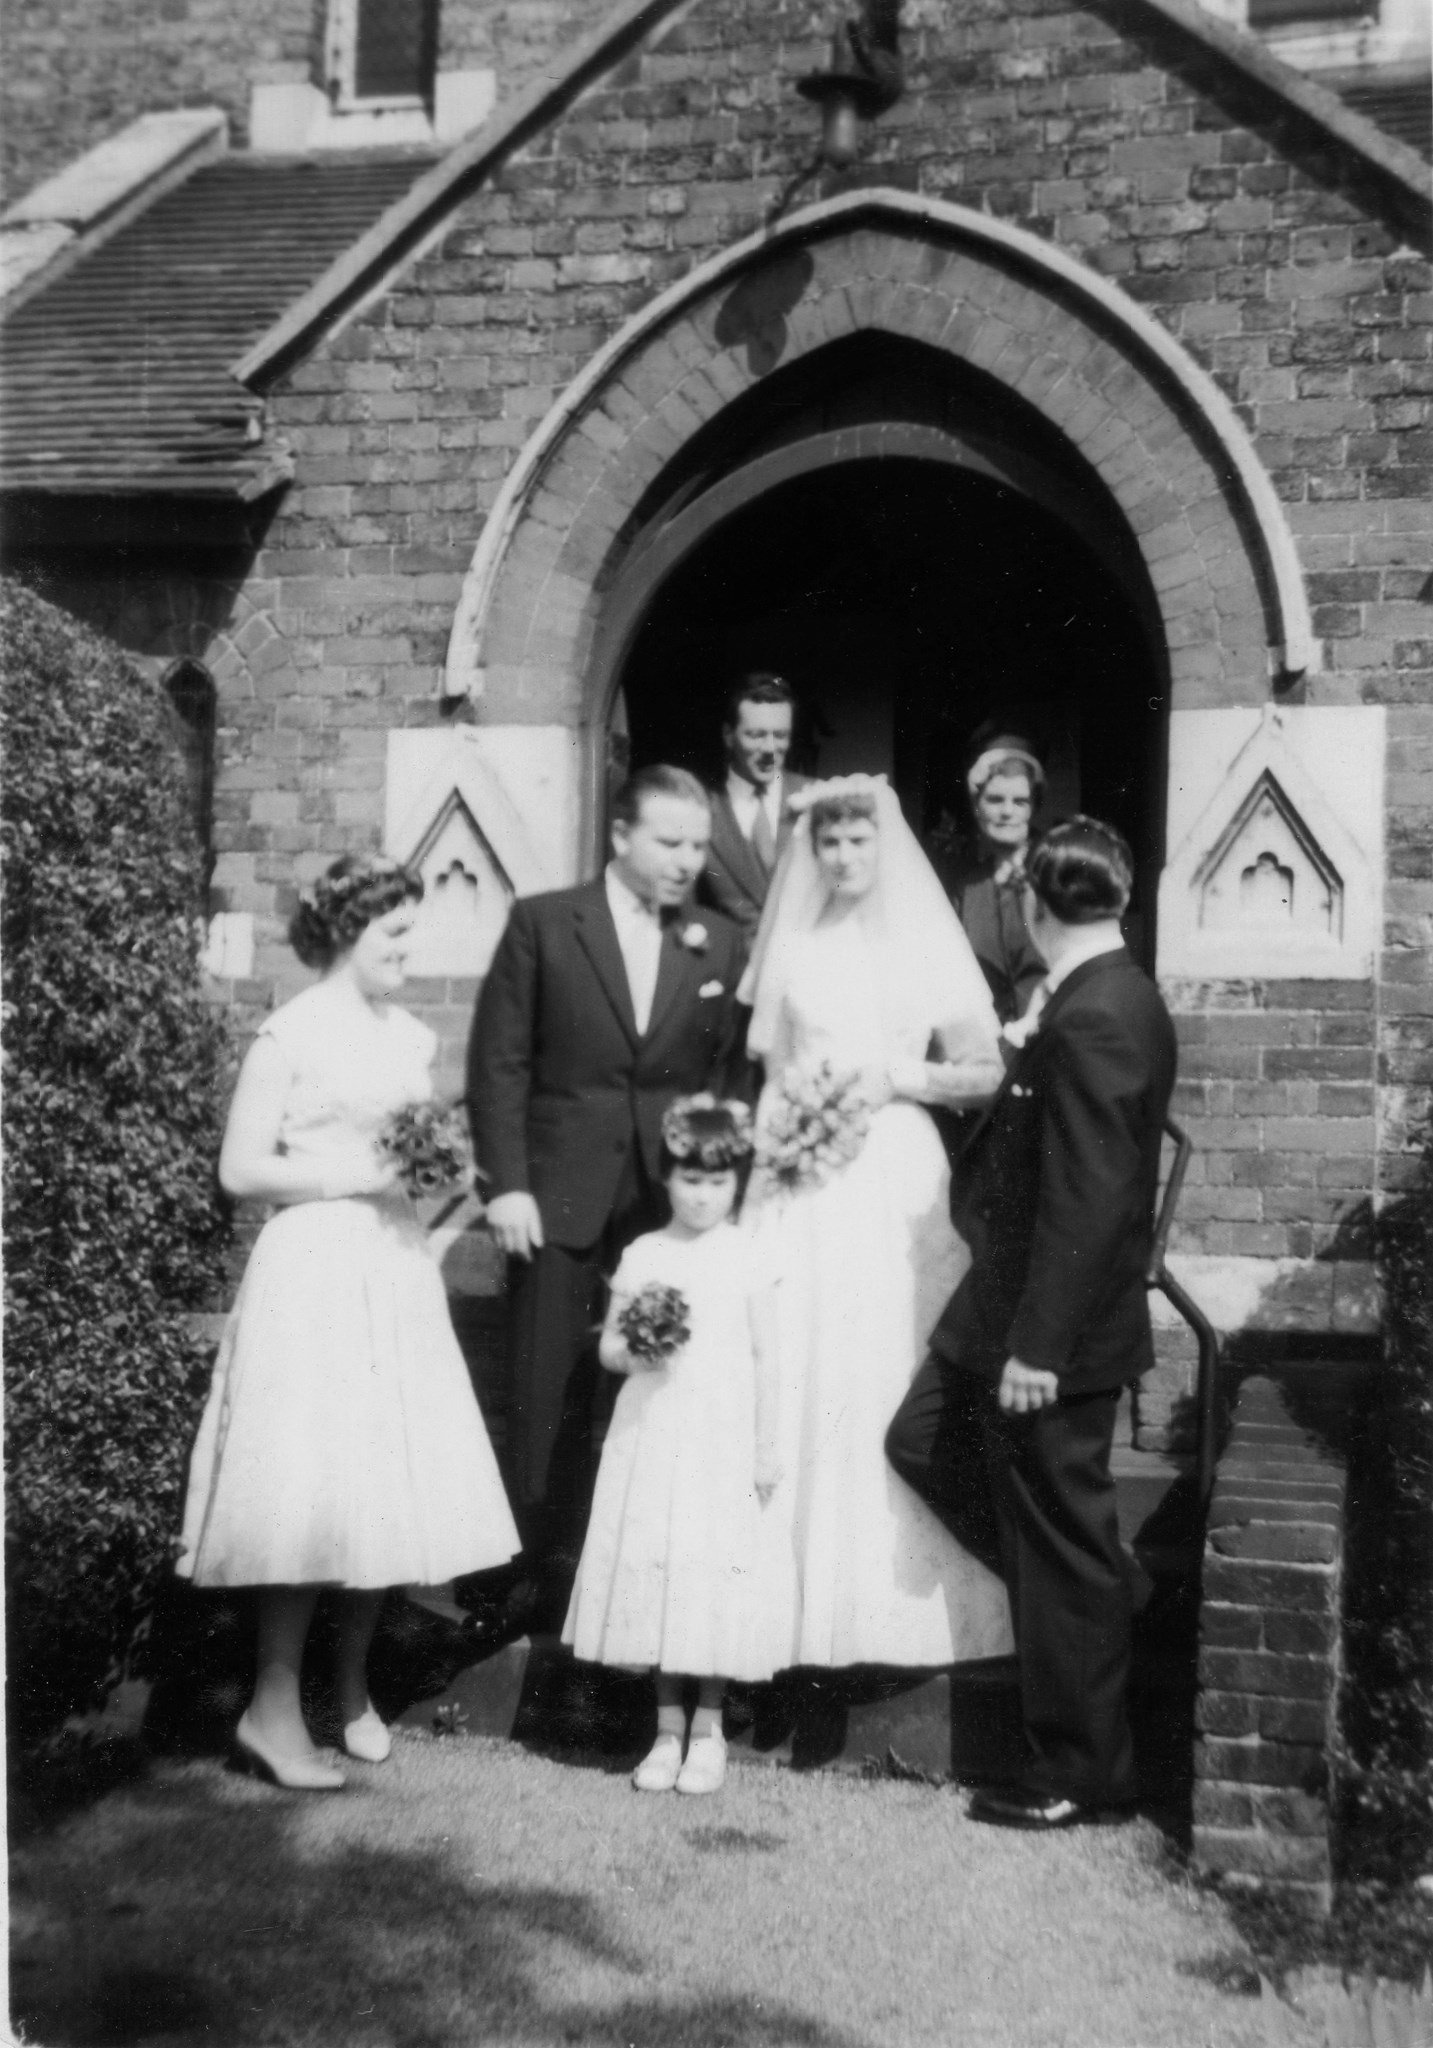 Betty and Den Adams Wedding - 12 April 1958